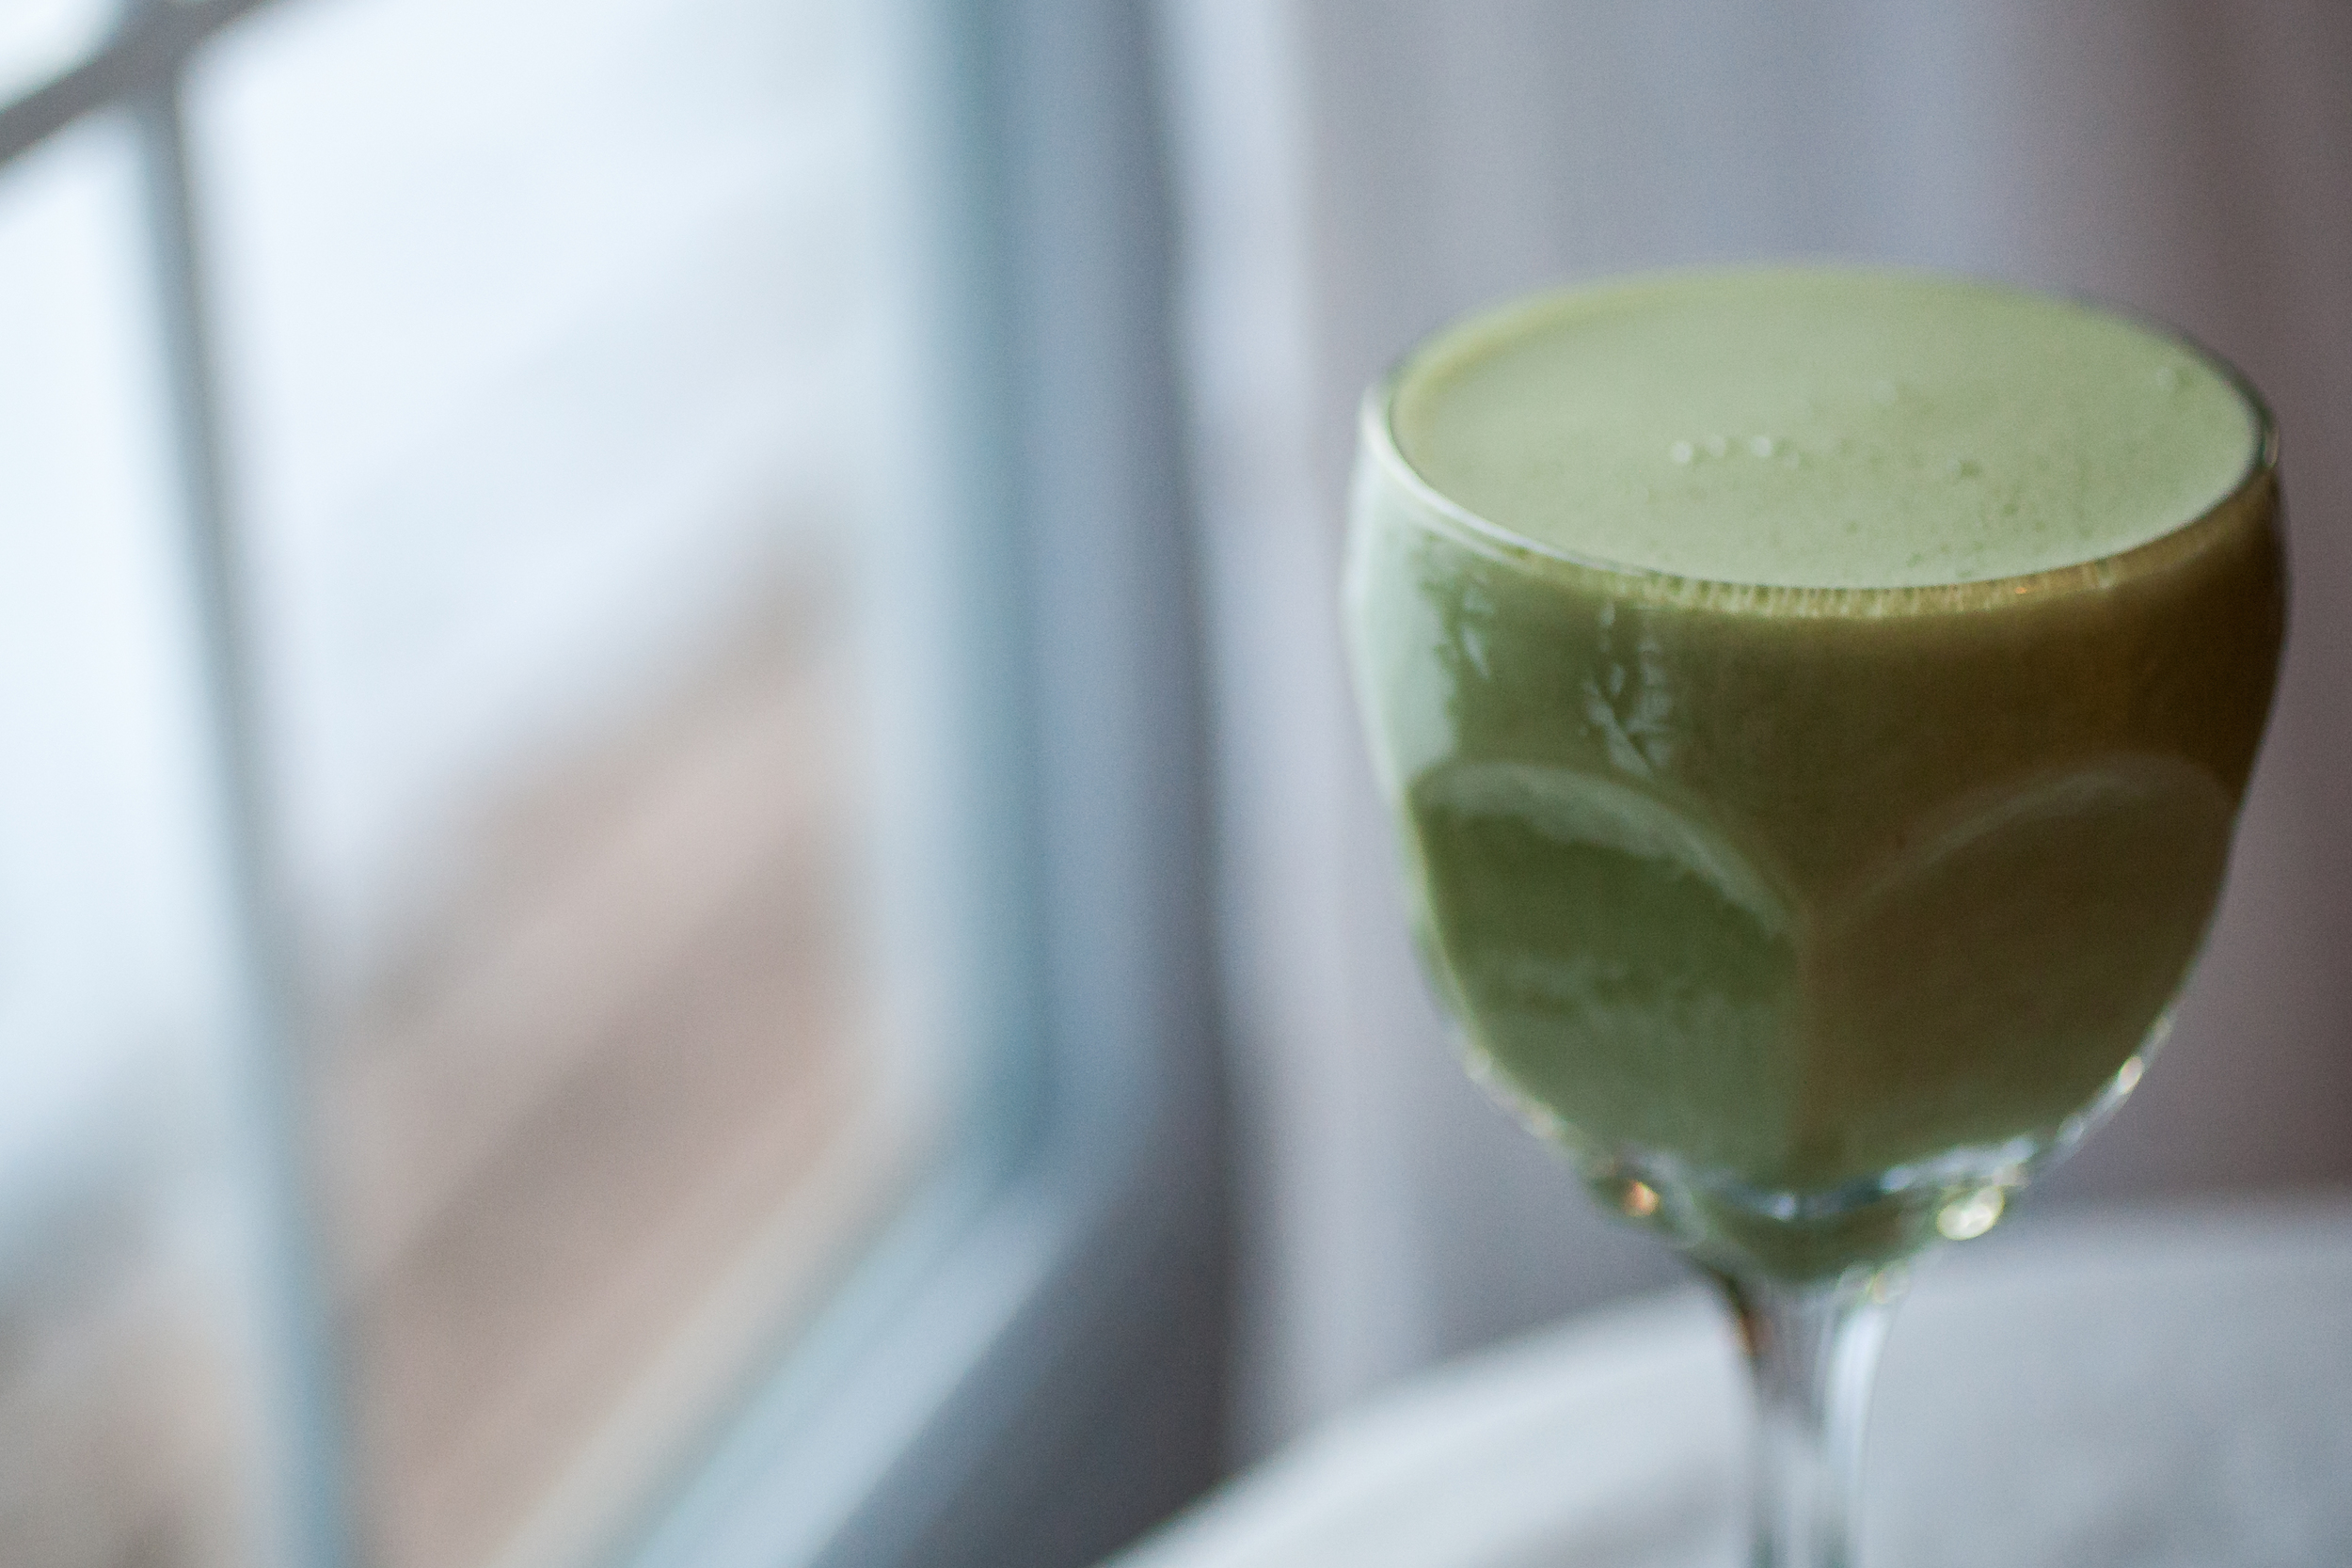 Produce On Parade - Holiday Matcha Shake - A frosty, matcha shake infused with fresh nutmeg and sweetened by Kahlua is thick with creamy cashews that makes a healthy and delicious treat!